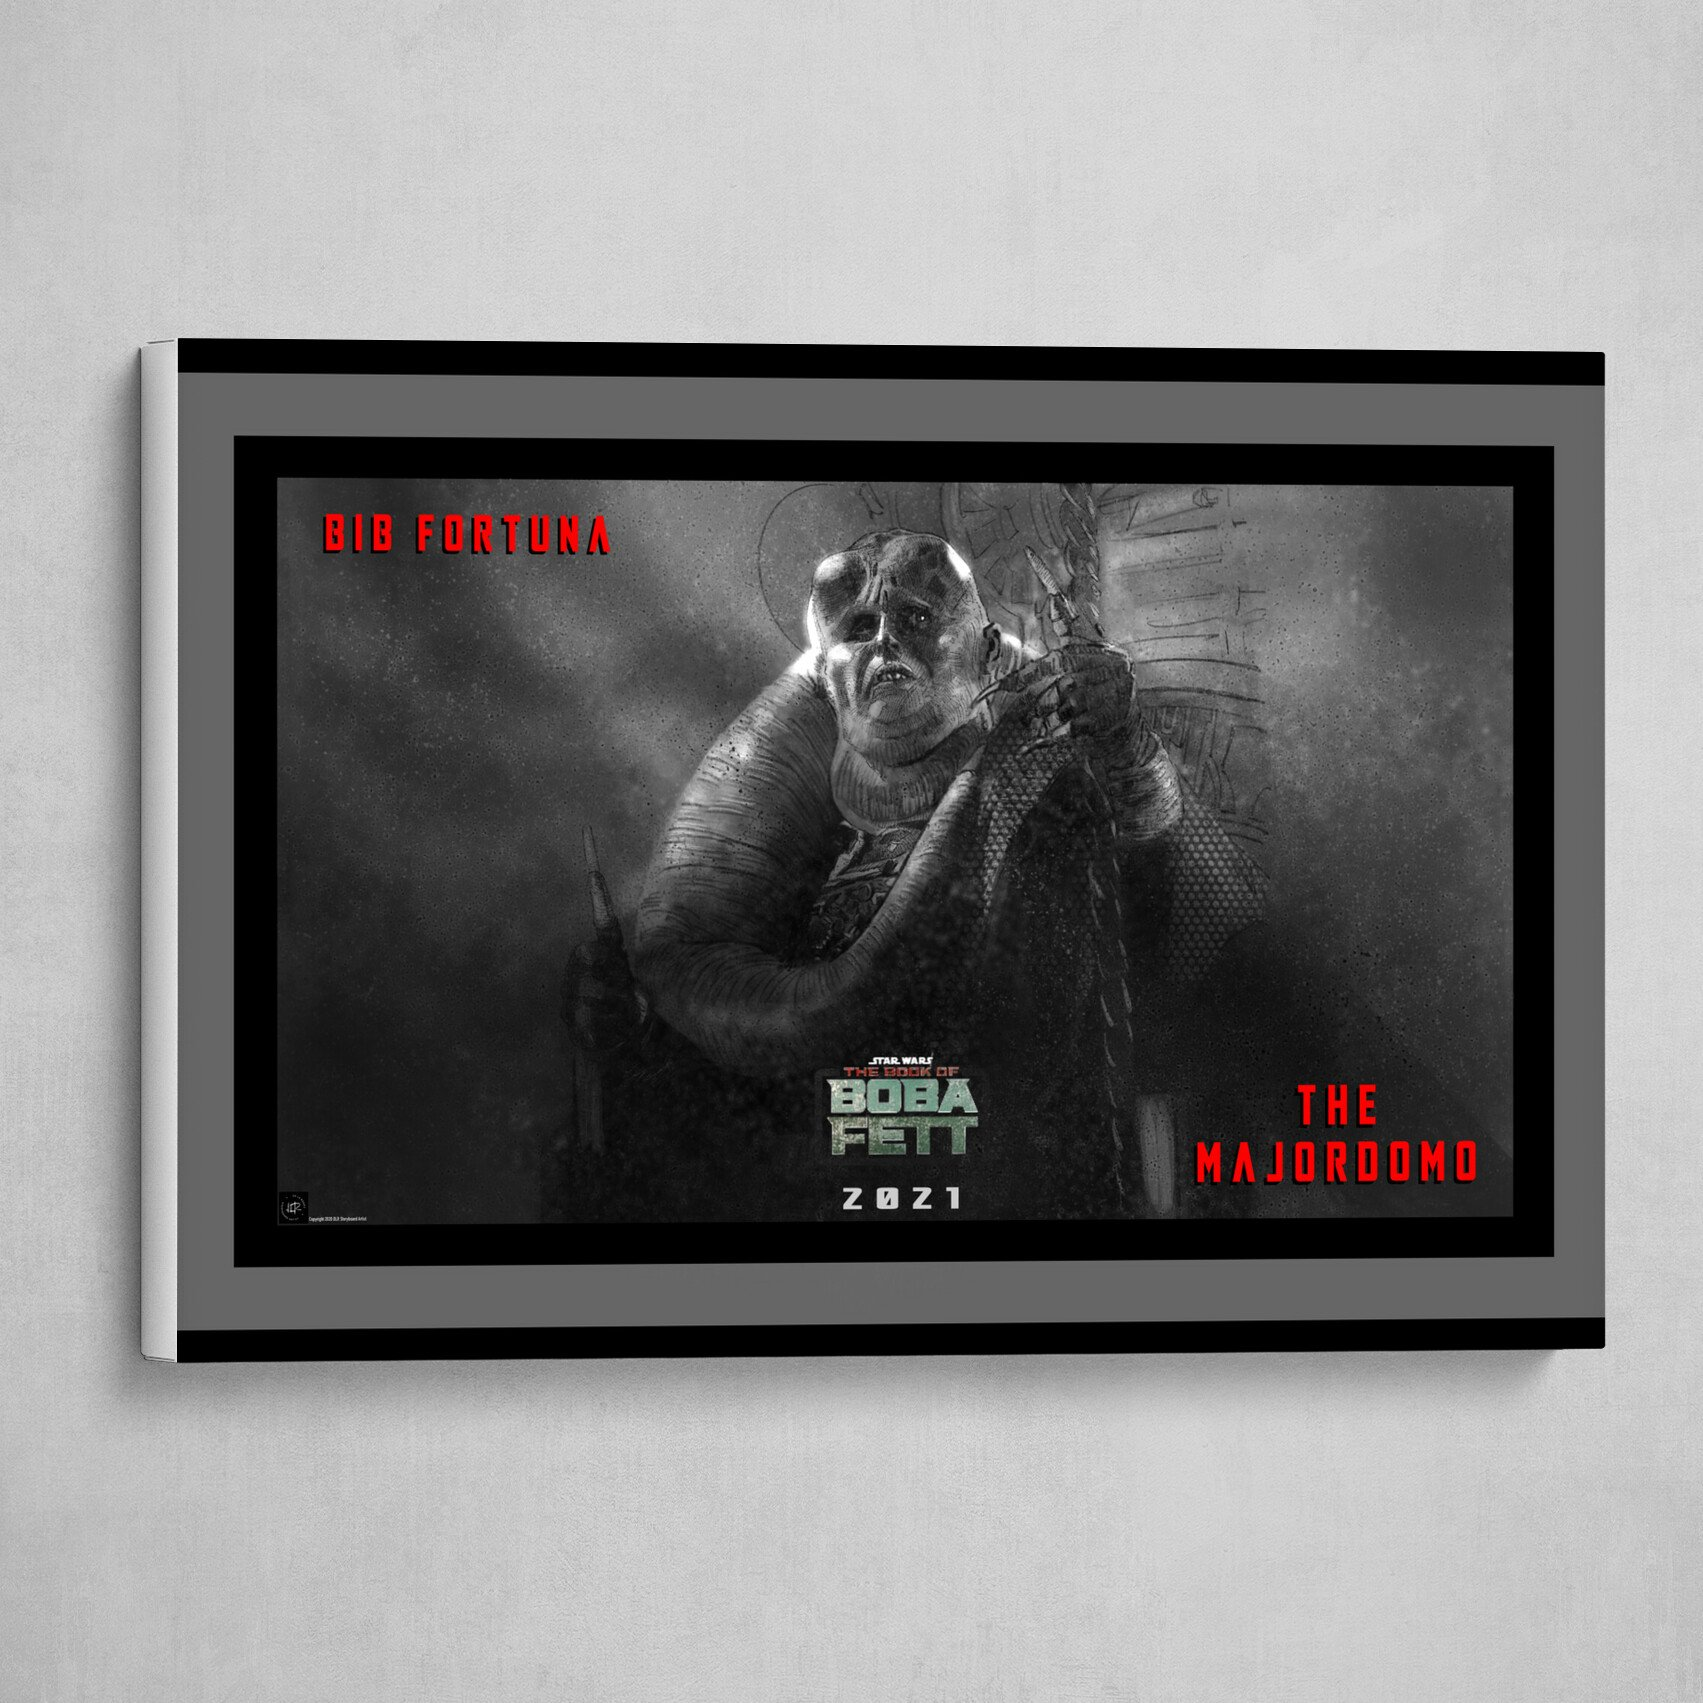 The Majordomo Bib Fortuna Poster B&W with Red and Green